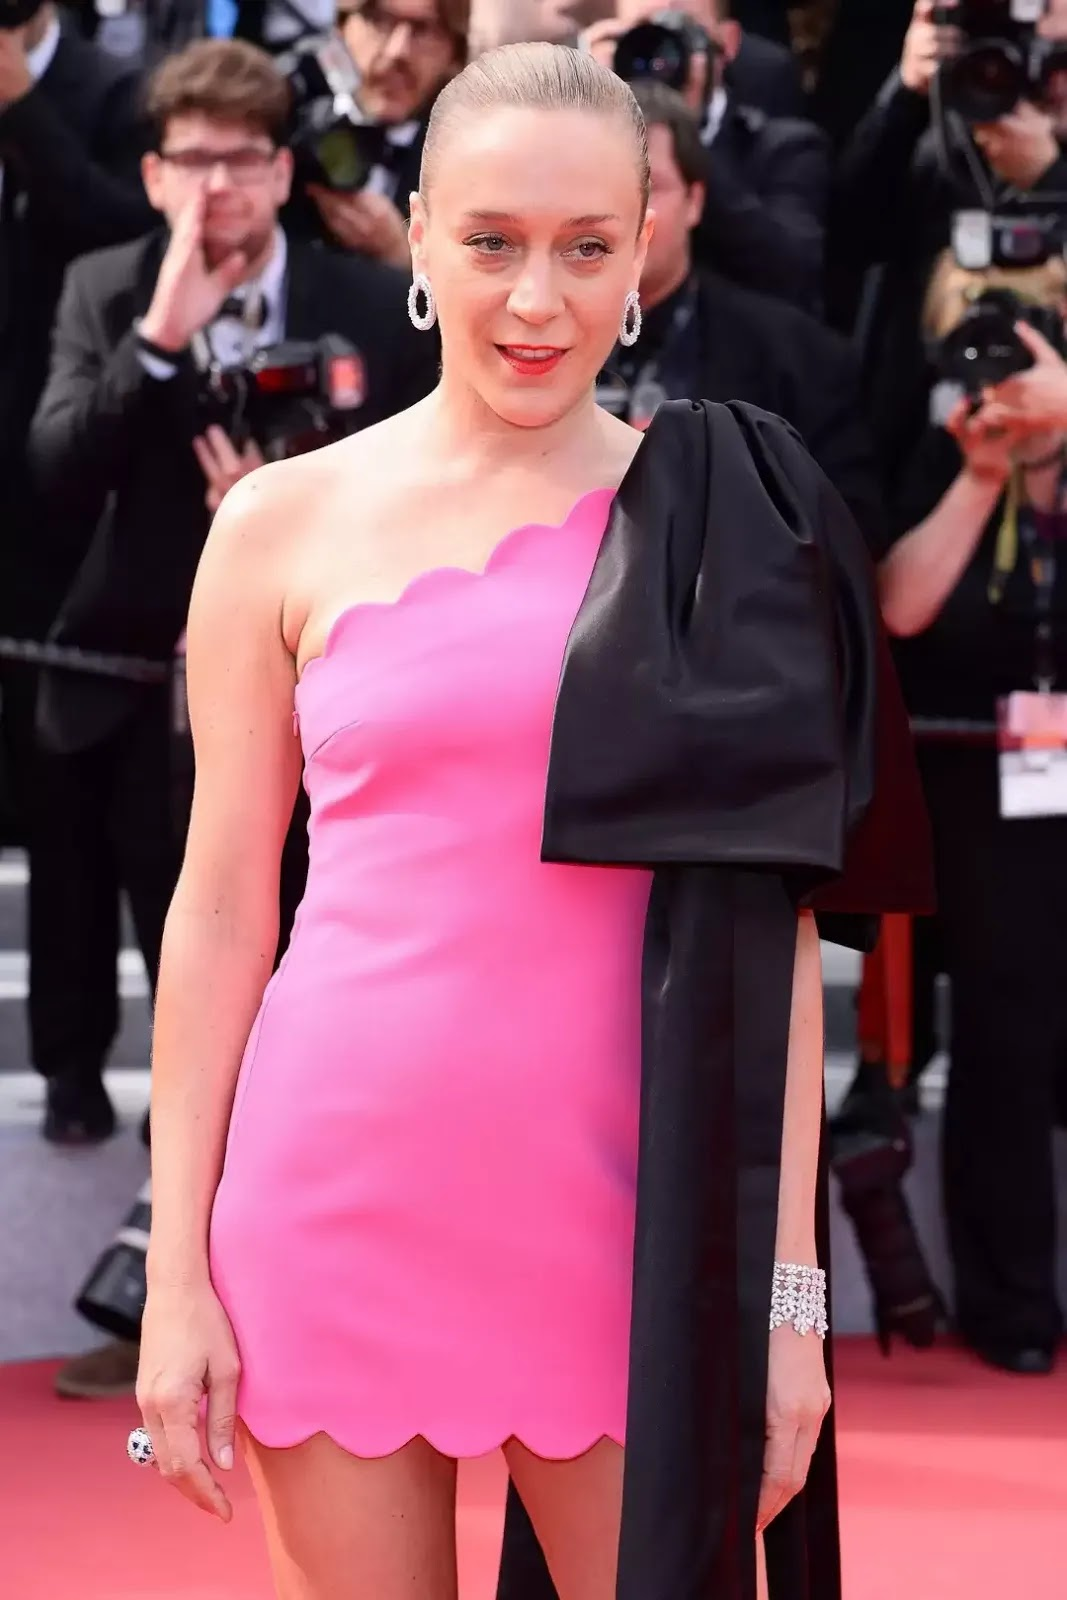 Chloe Sevigny – Once Upon a Time in Hollywood Red Carpet at Cannes Film Festival  Latest Photos